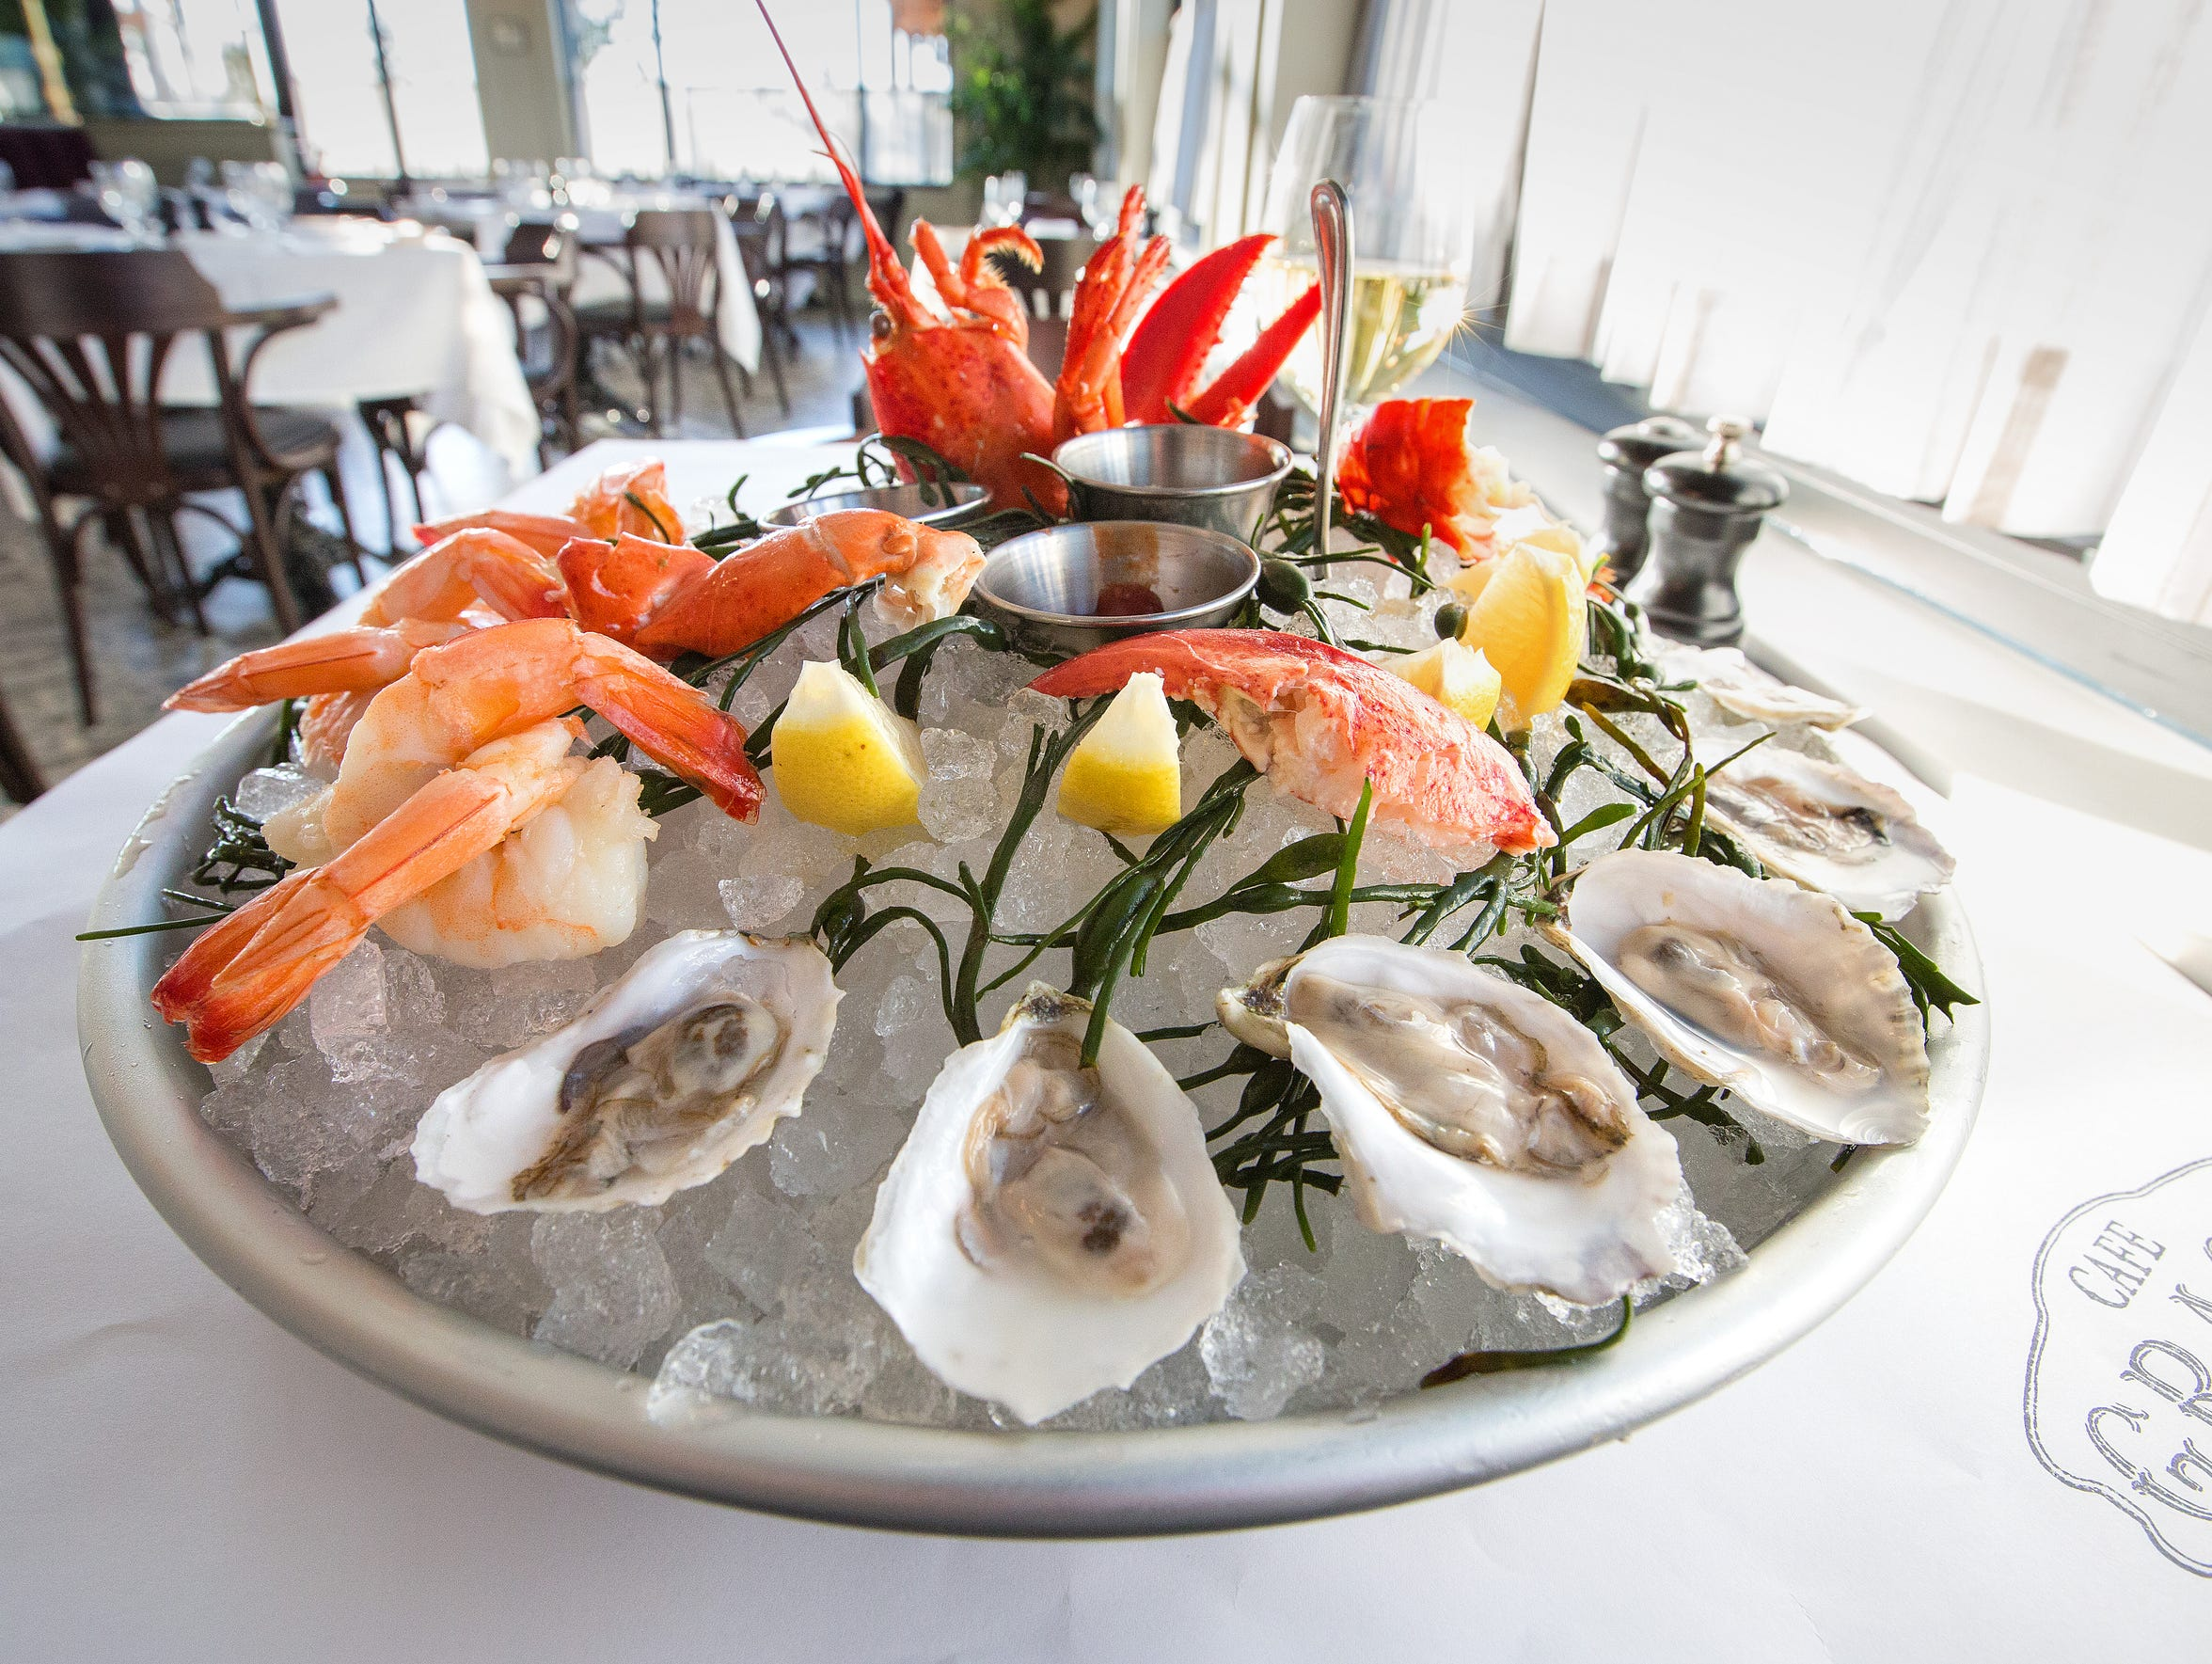 Chilled-seafood towers are on the menu at French restaurant